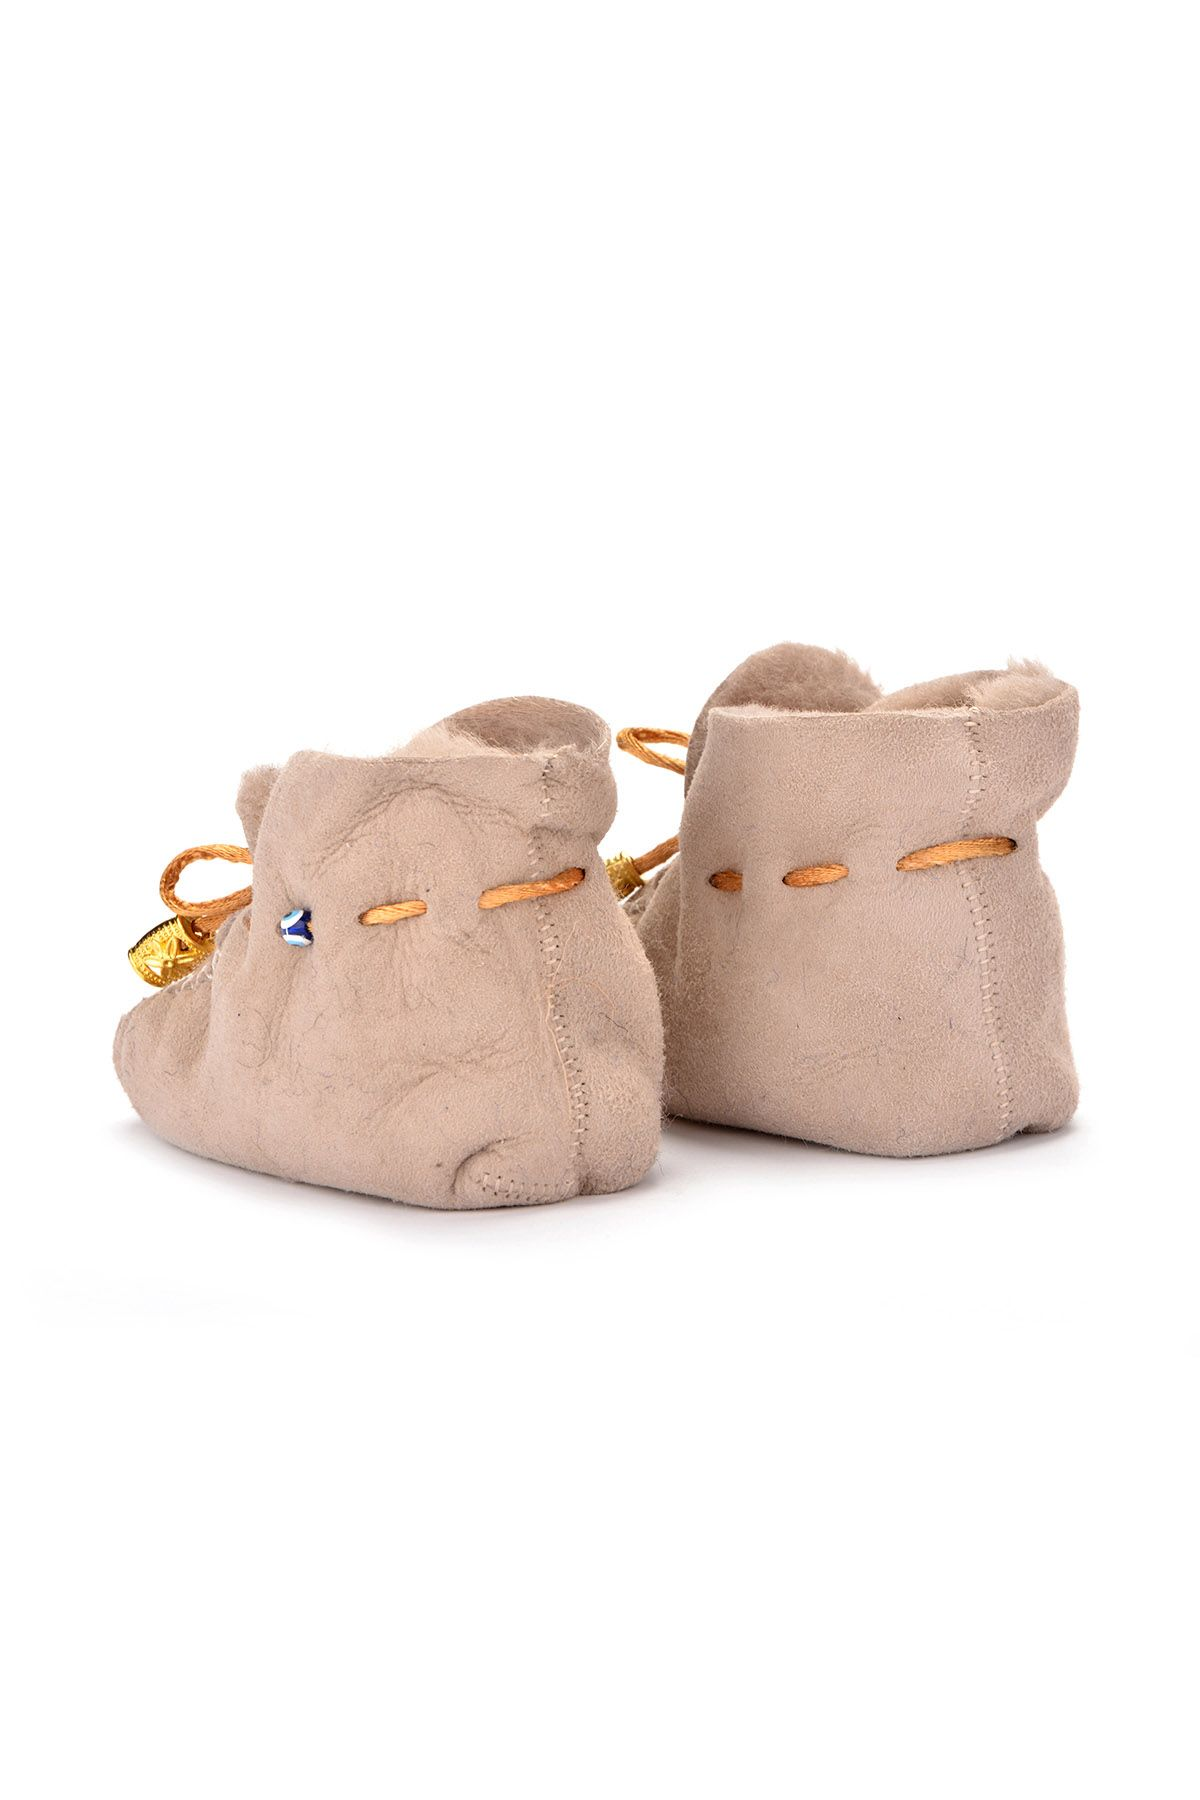 Pegia Laced Kids Booties From Genuine Fur Beige